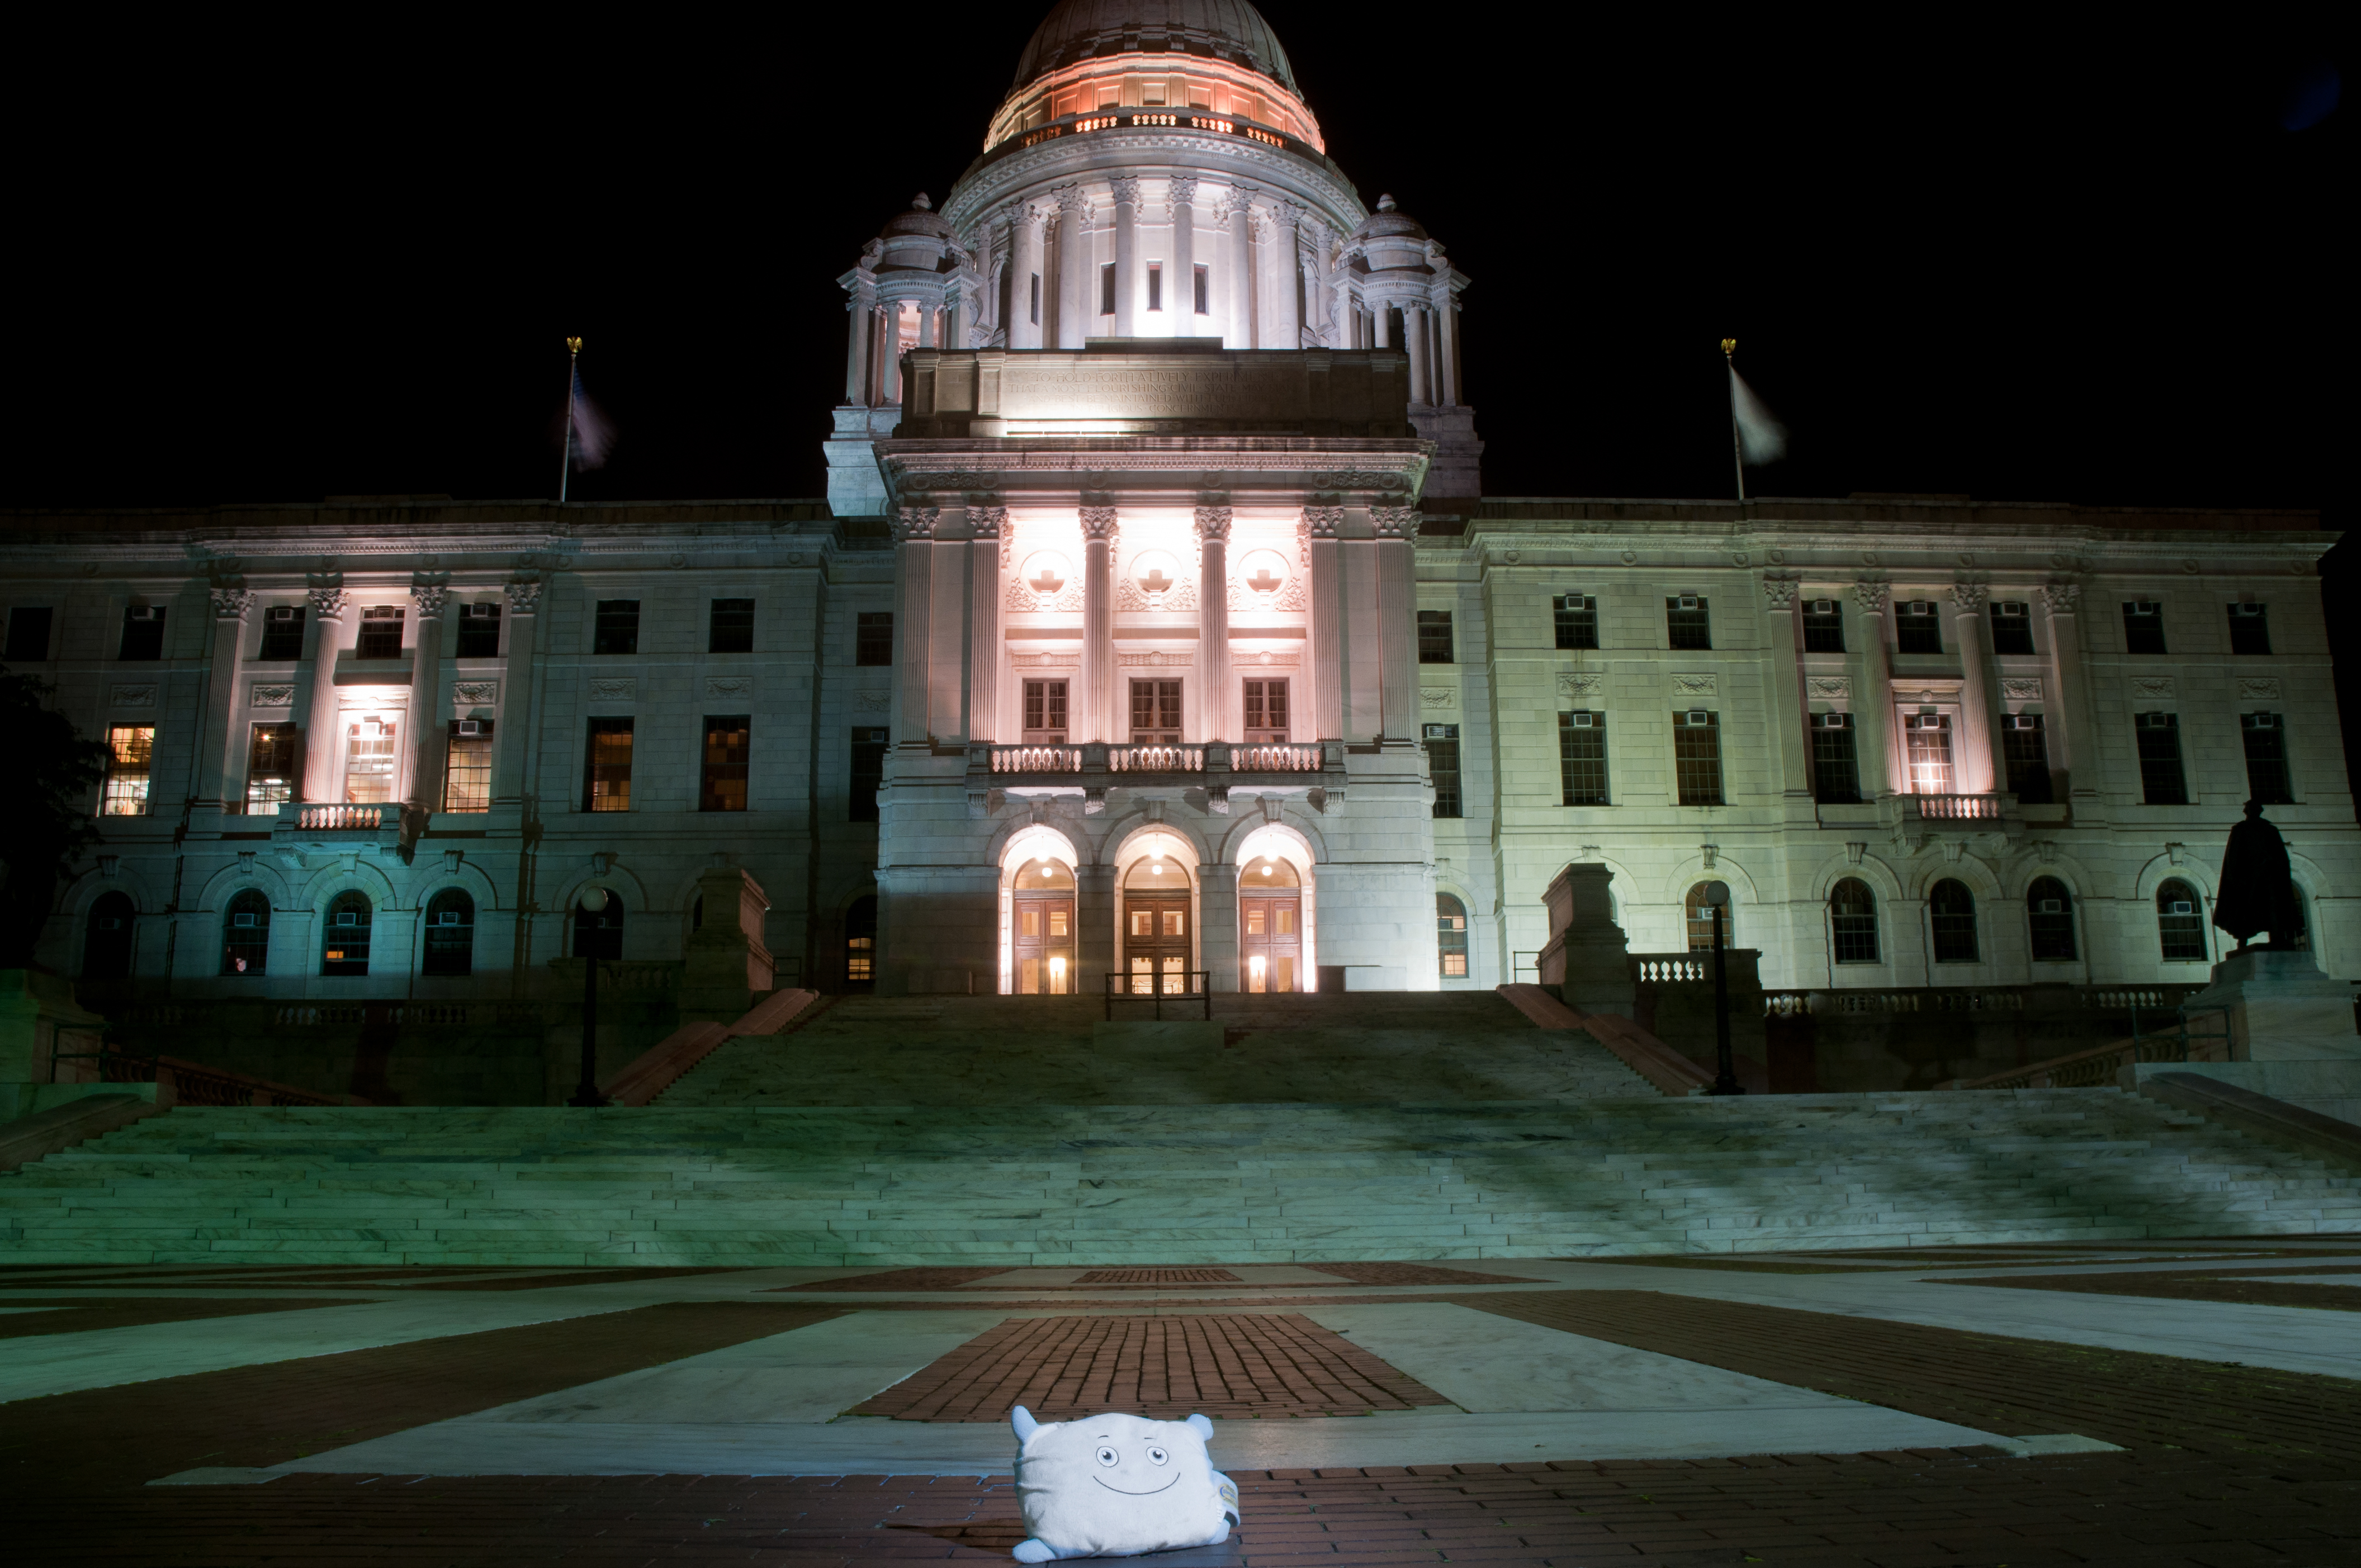 Pillow Featherbed at the Rhode Island state house!